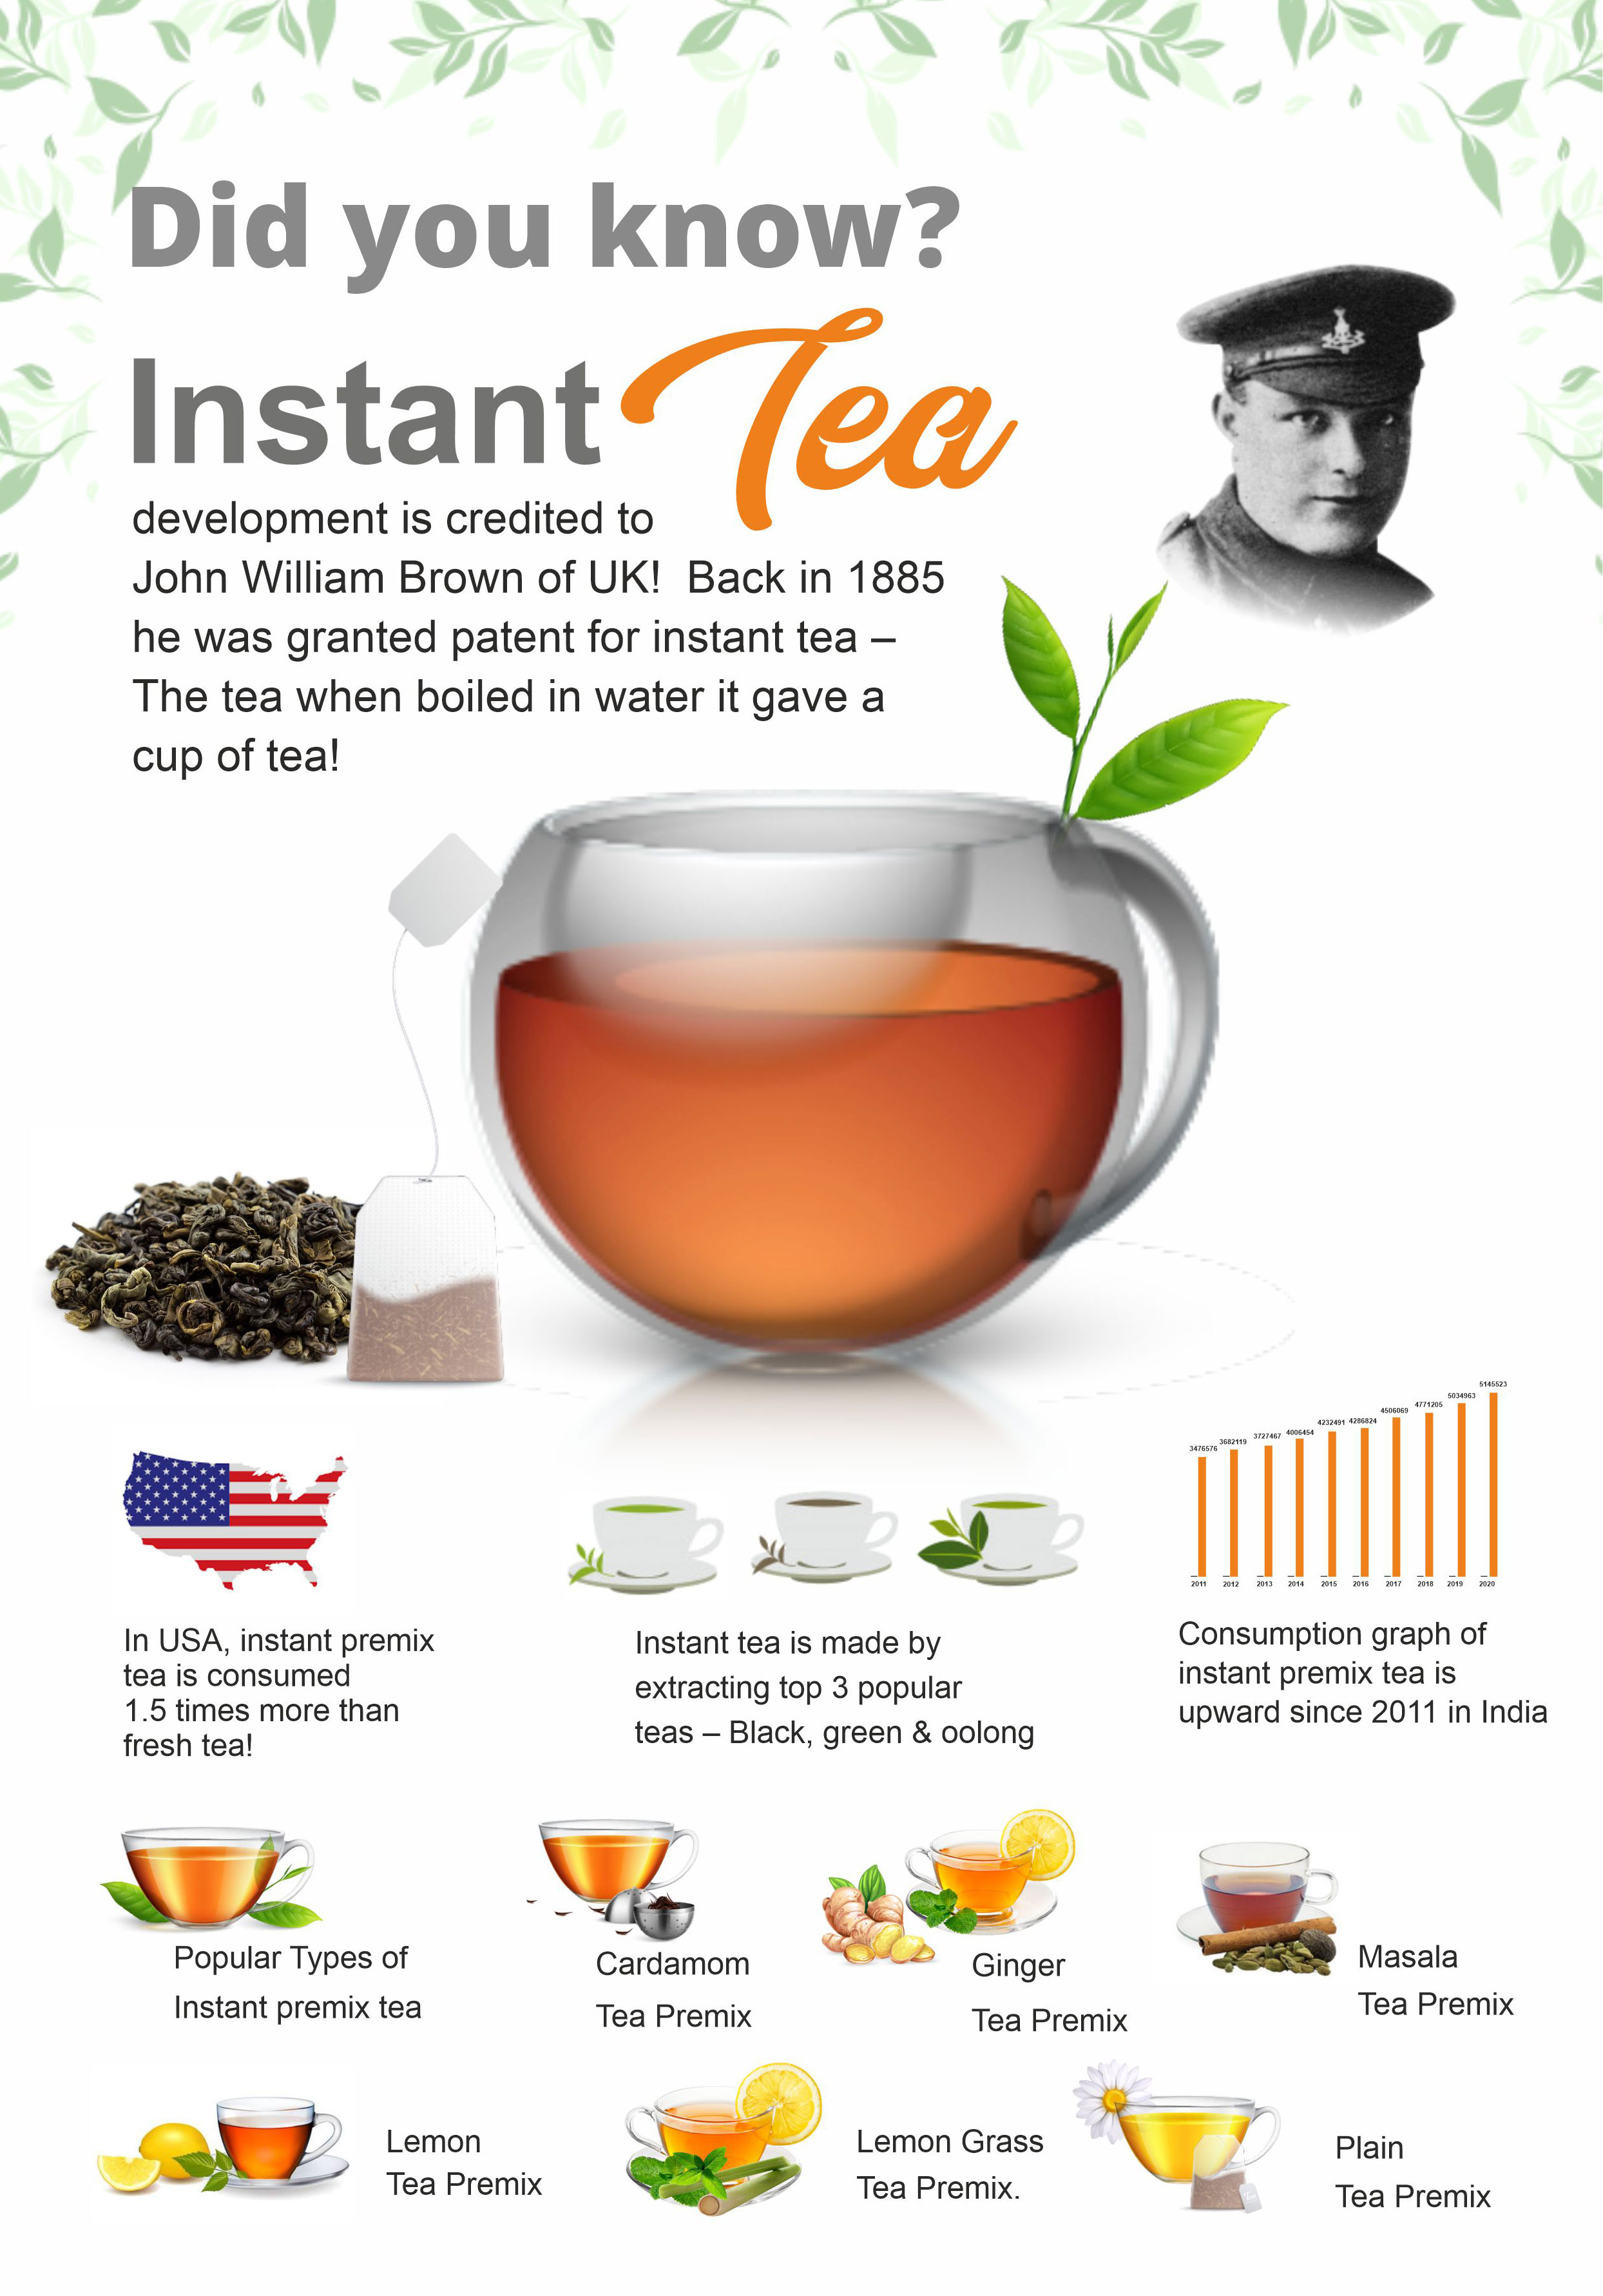 fun facts about instant tea